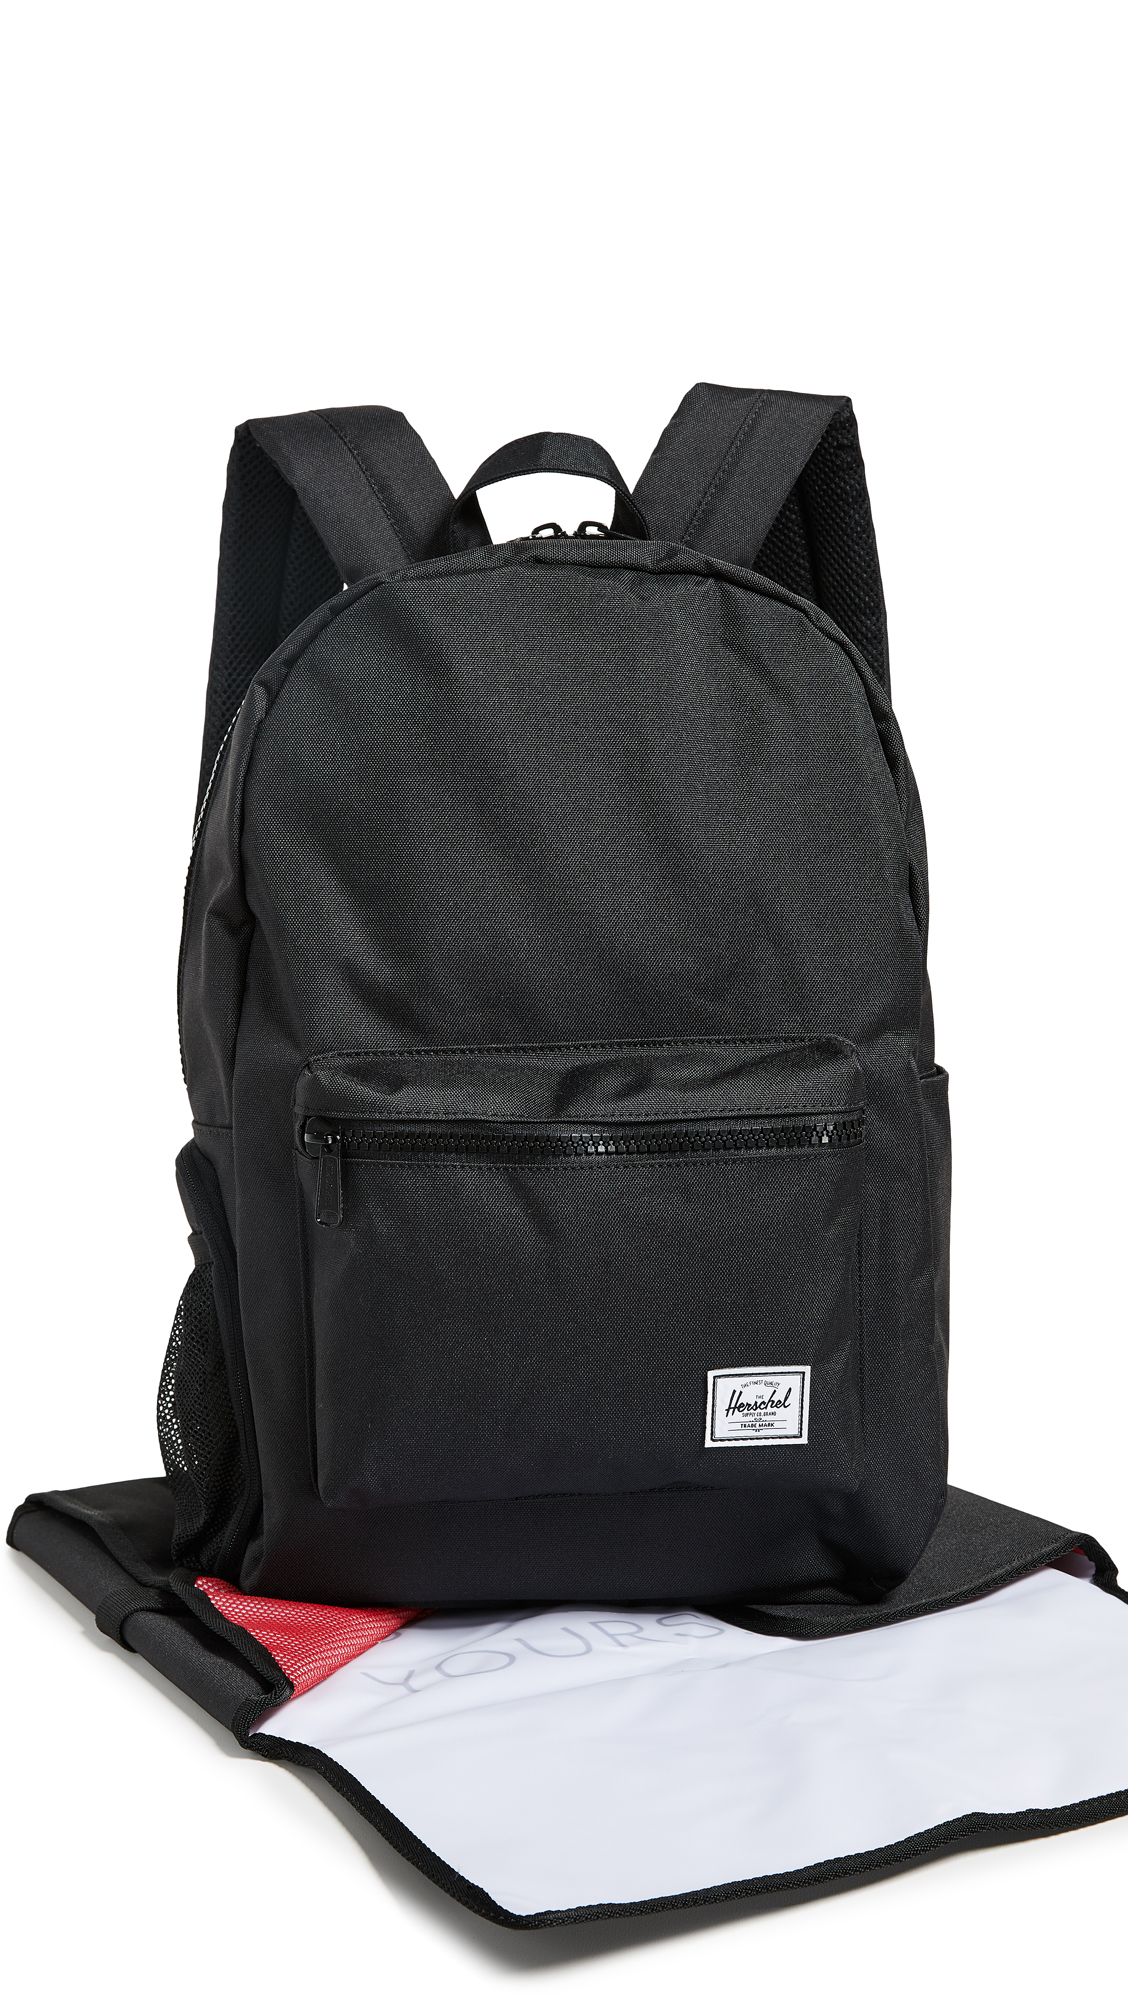 01a802f926f8 Herschel Supply Co. Settlement Sprout Diaper Backpack